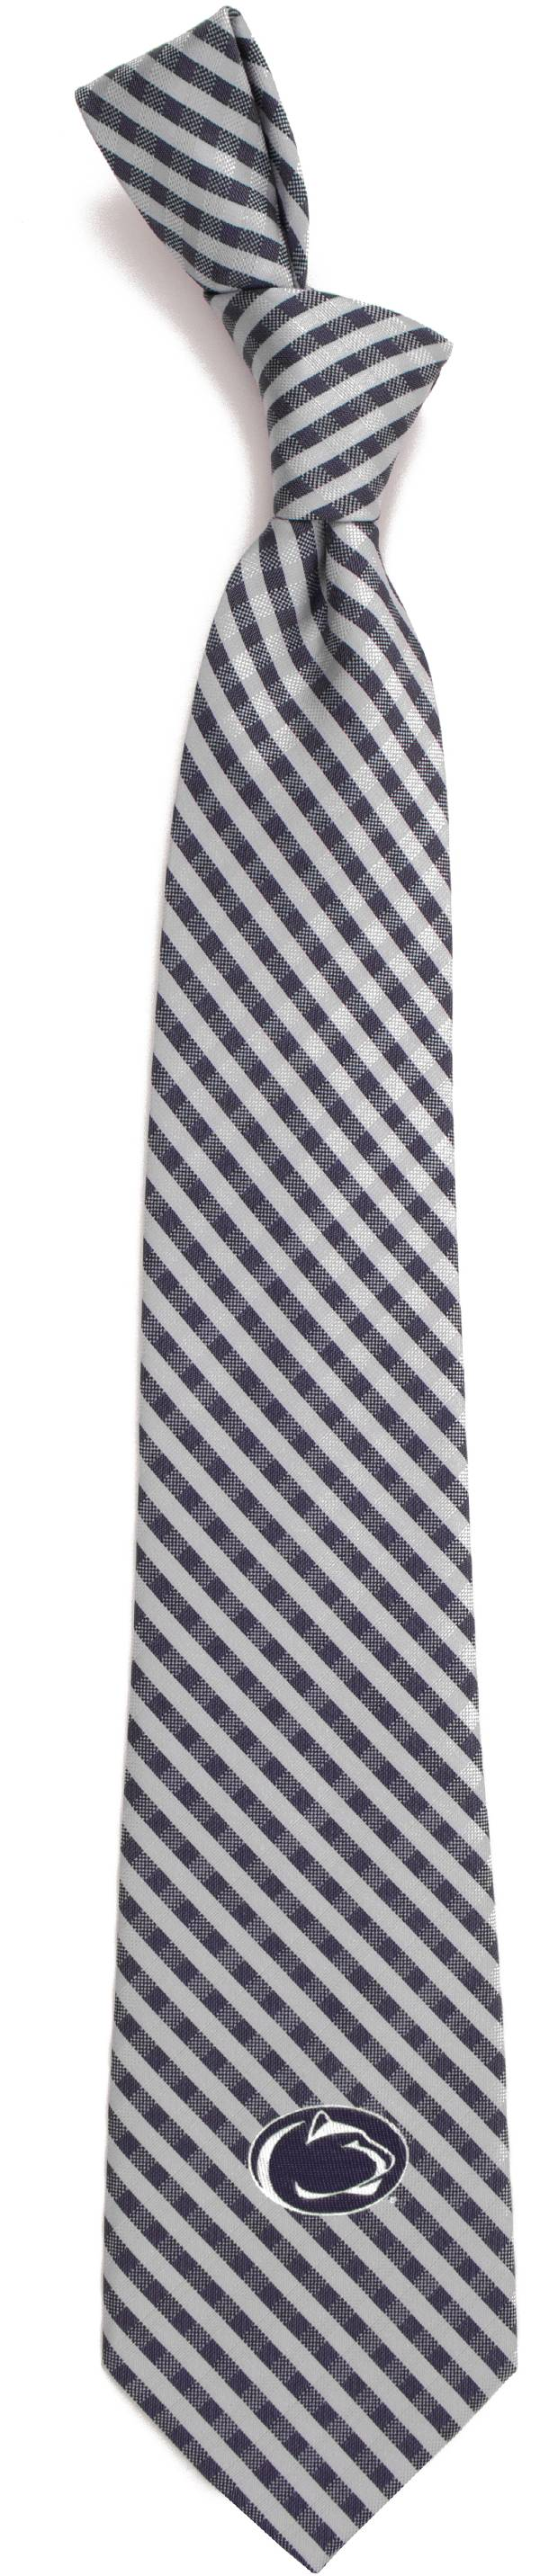 Eagles Wings Penn State Nittany Lions Gingham Necktie product image